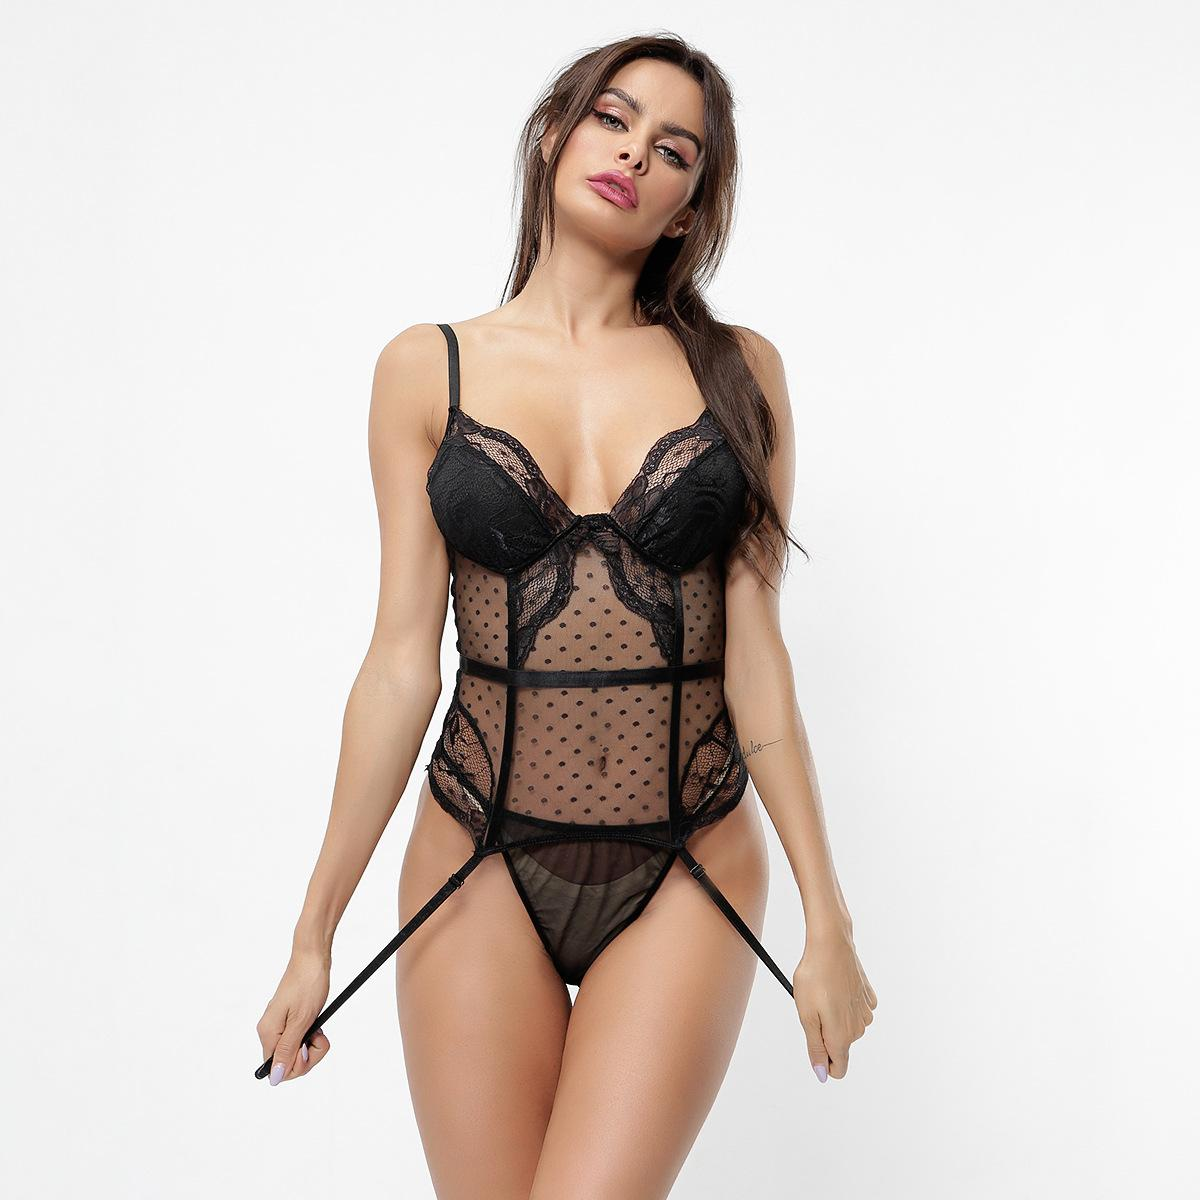 Export Wholesale Sexy Lingerie Model Lace Stitching Polka Dot Mesh Sexy Highlight Sexy